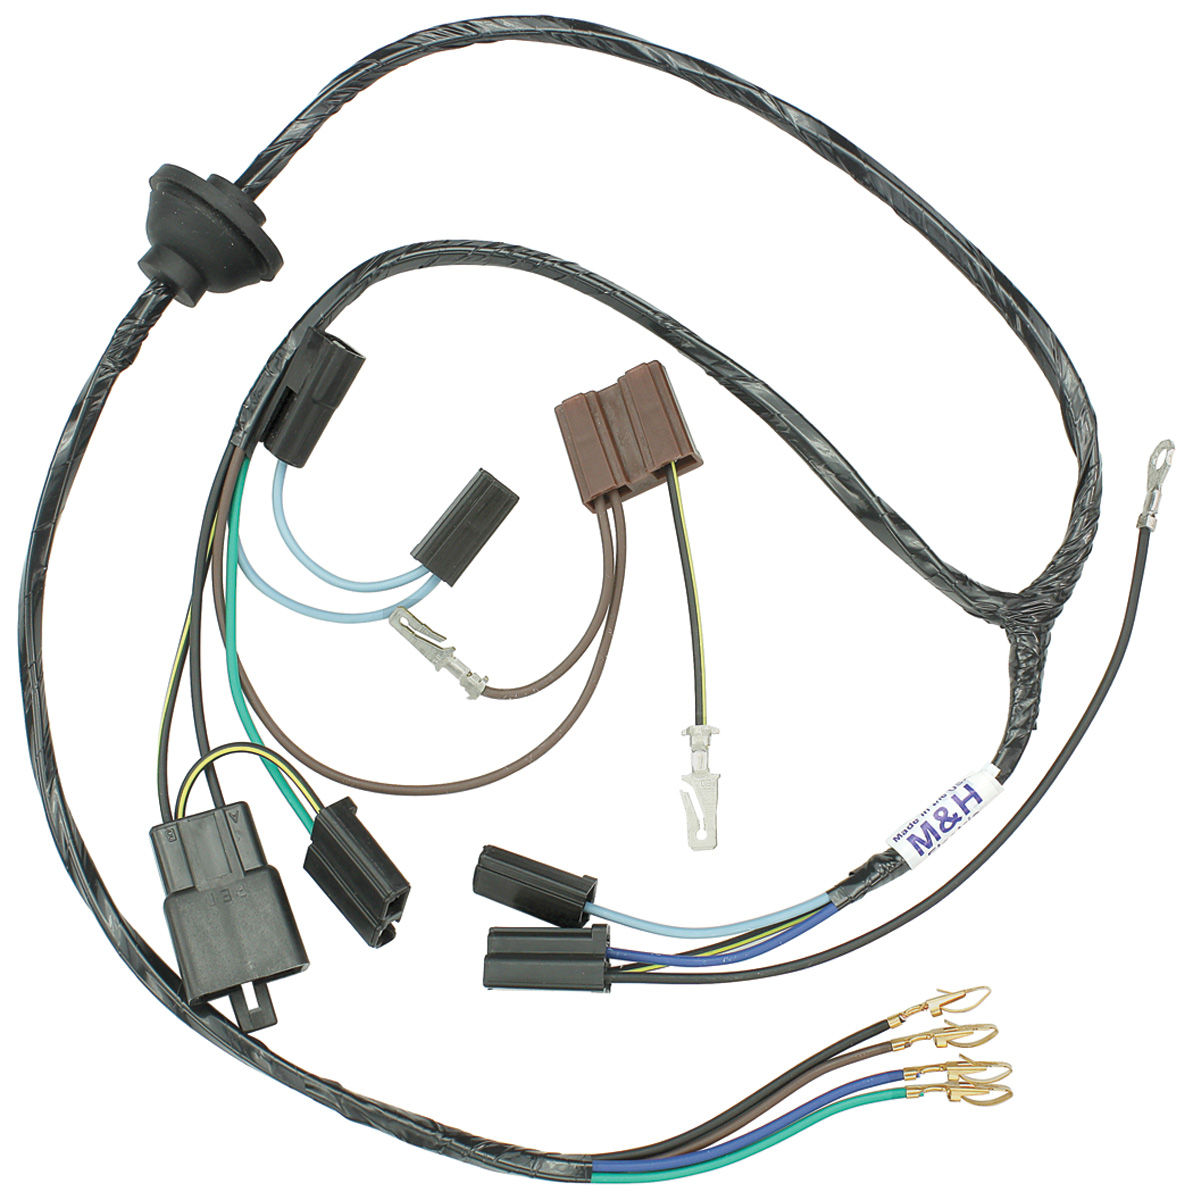 hight resolution of wrg 8538 72 chevelle wiper motor wiring diagram 1972 chevelle wiper motor wiring diagram wiring